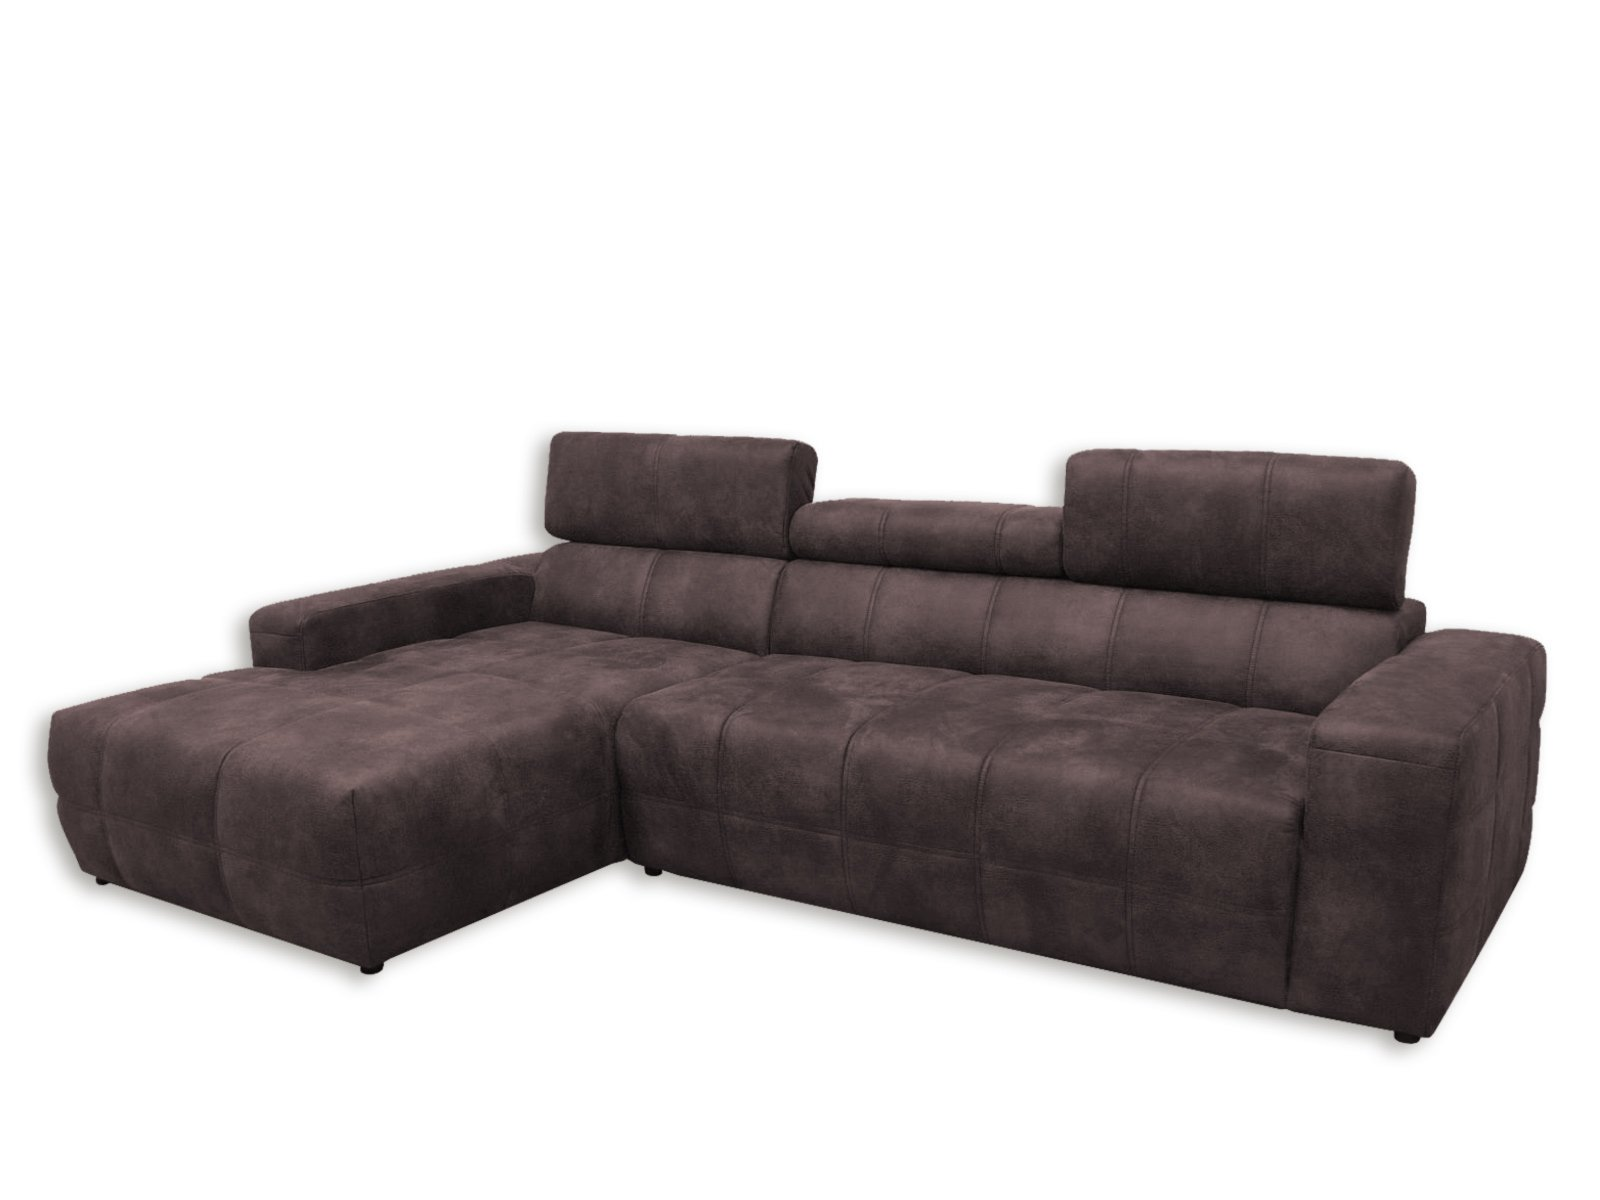 ecksofa dunkelbraun recamiere links mit kopfteilverstellung ecksofas l form sofas. Black Bedroom Furniture Sets. Home Design Ideas